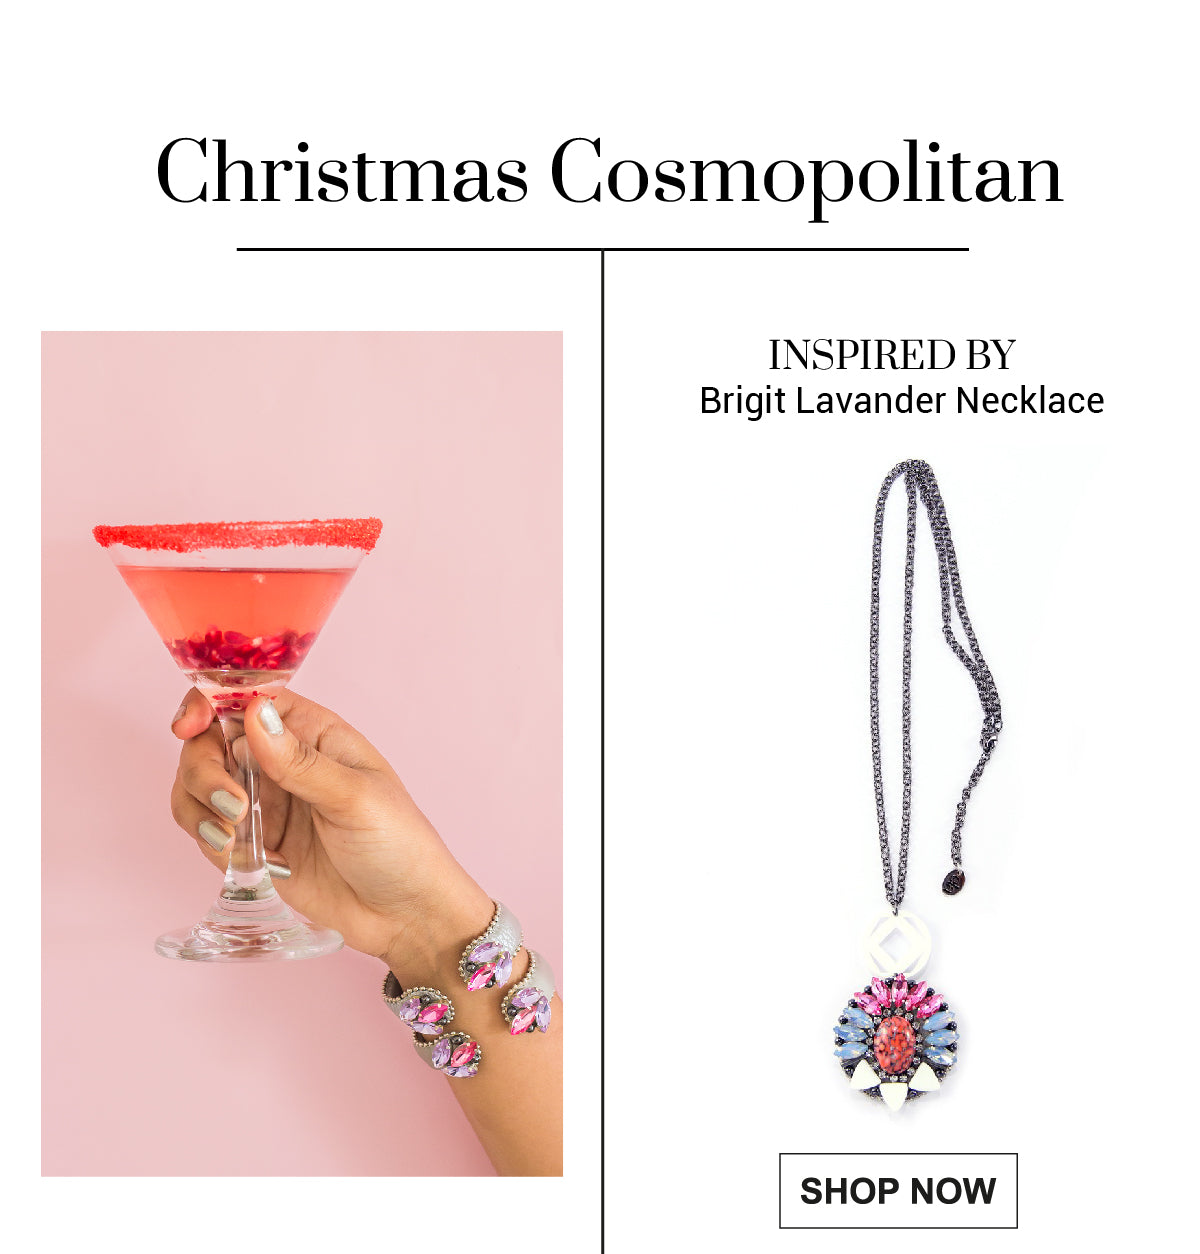 Christmas Cosmopolitan to share with friends.